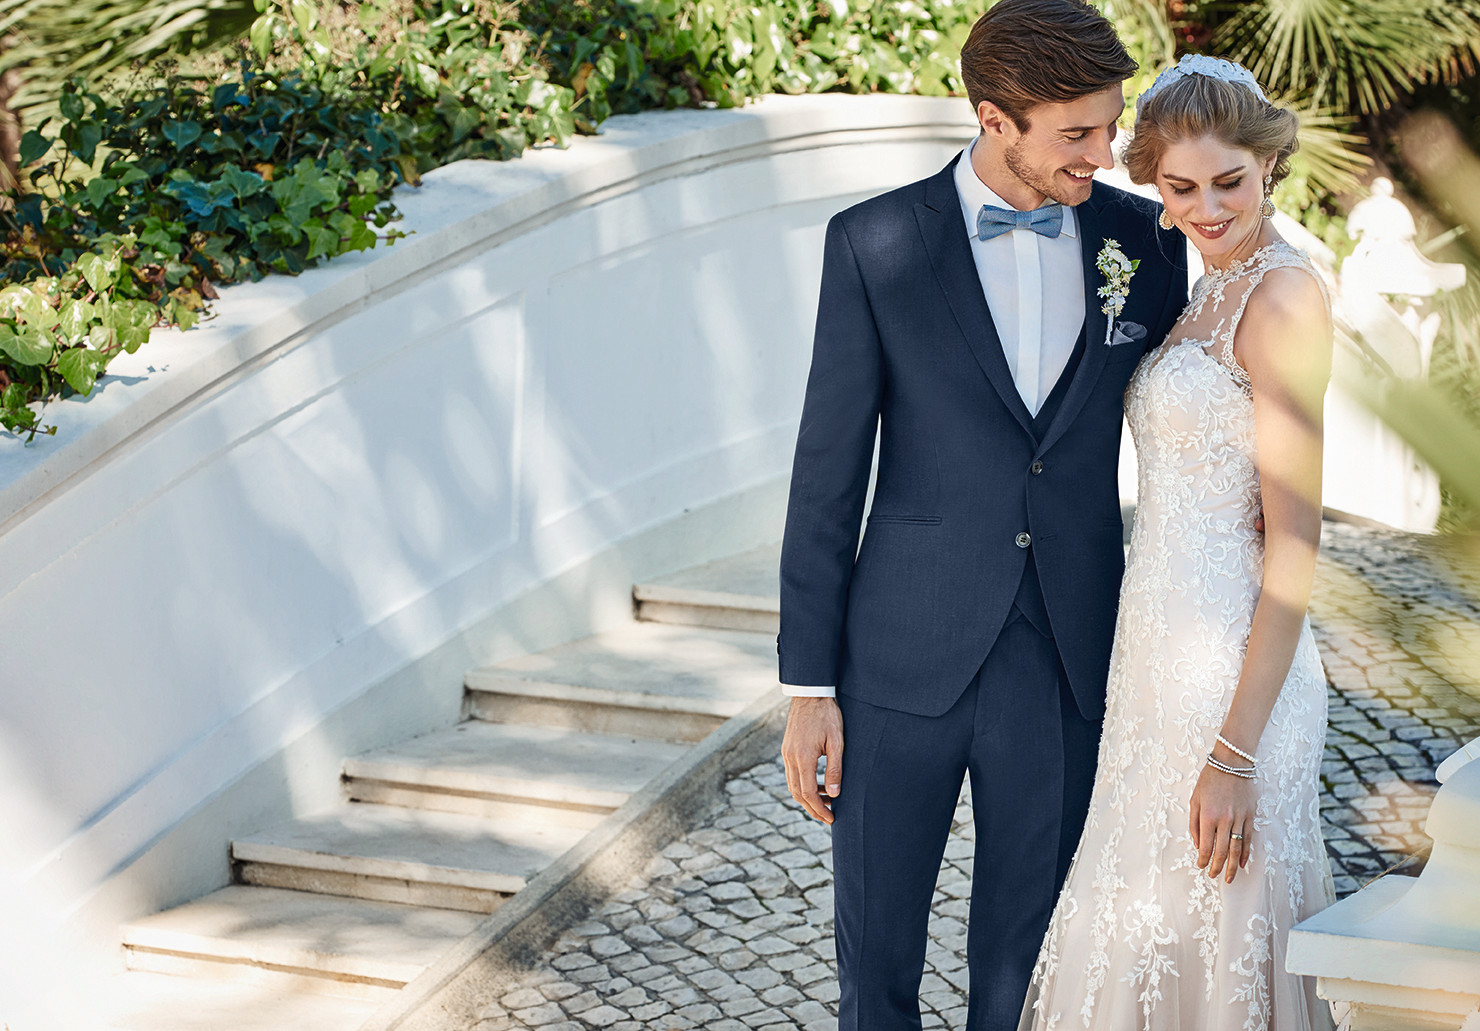 LOOKING FOR YOUR WEDDING SUIT?